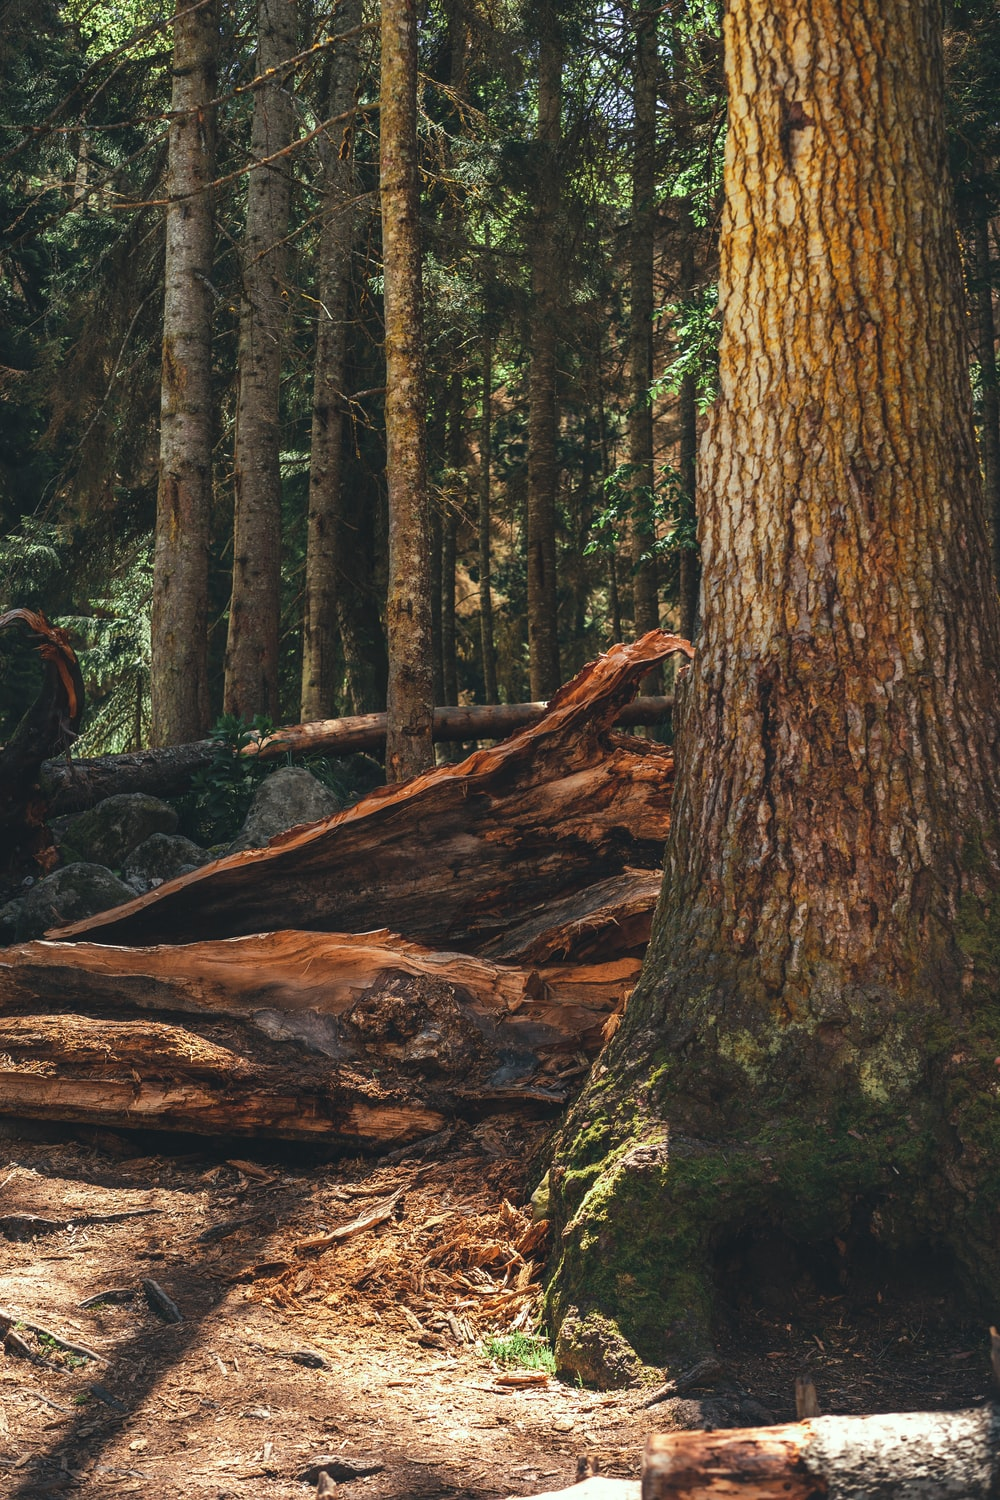 brown tree trunk in forest during daytime